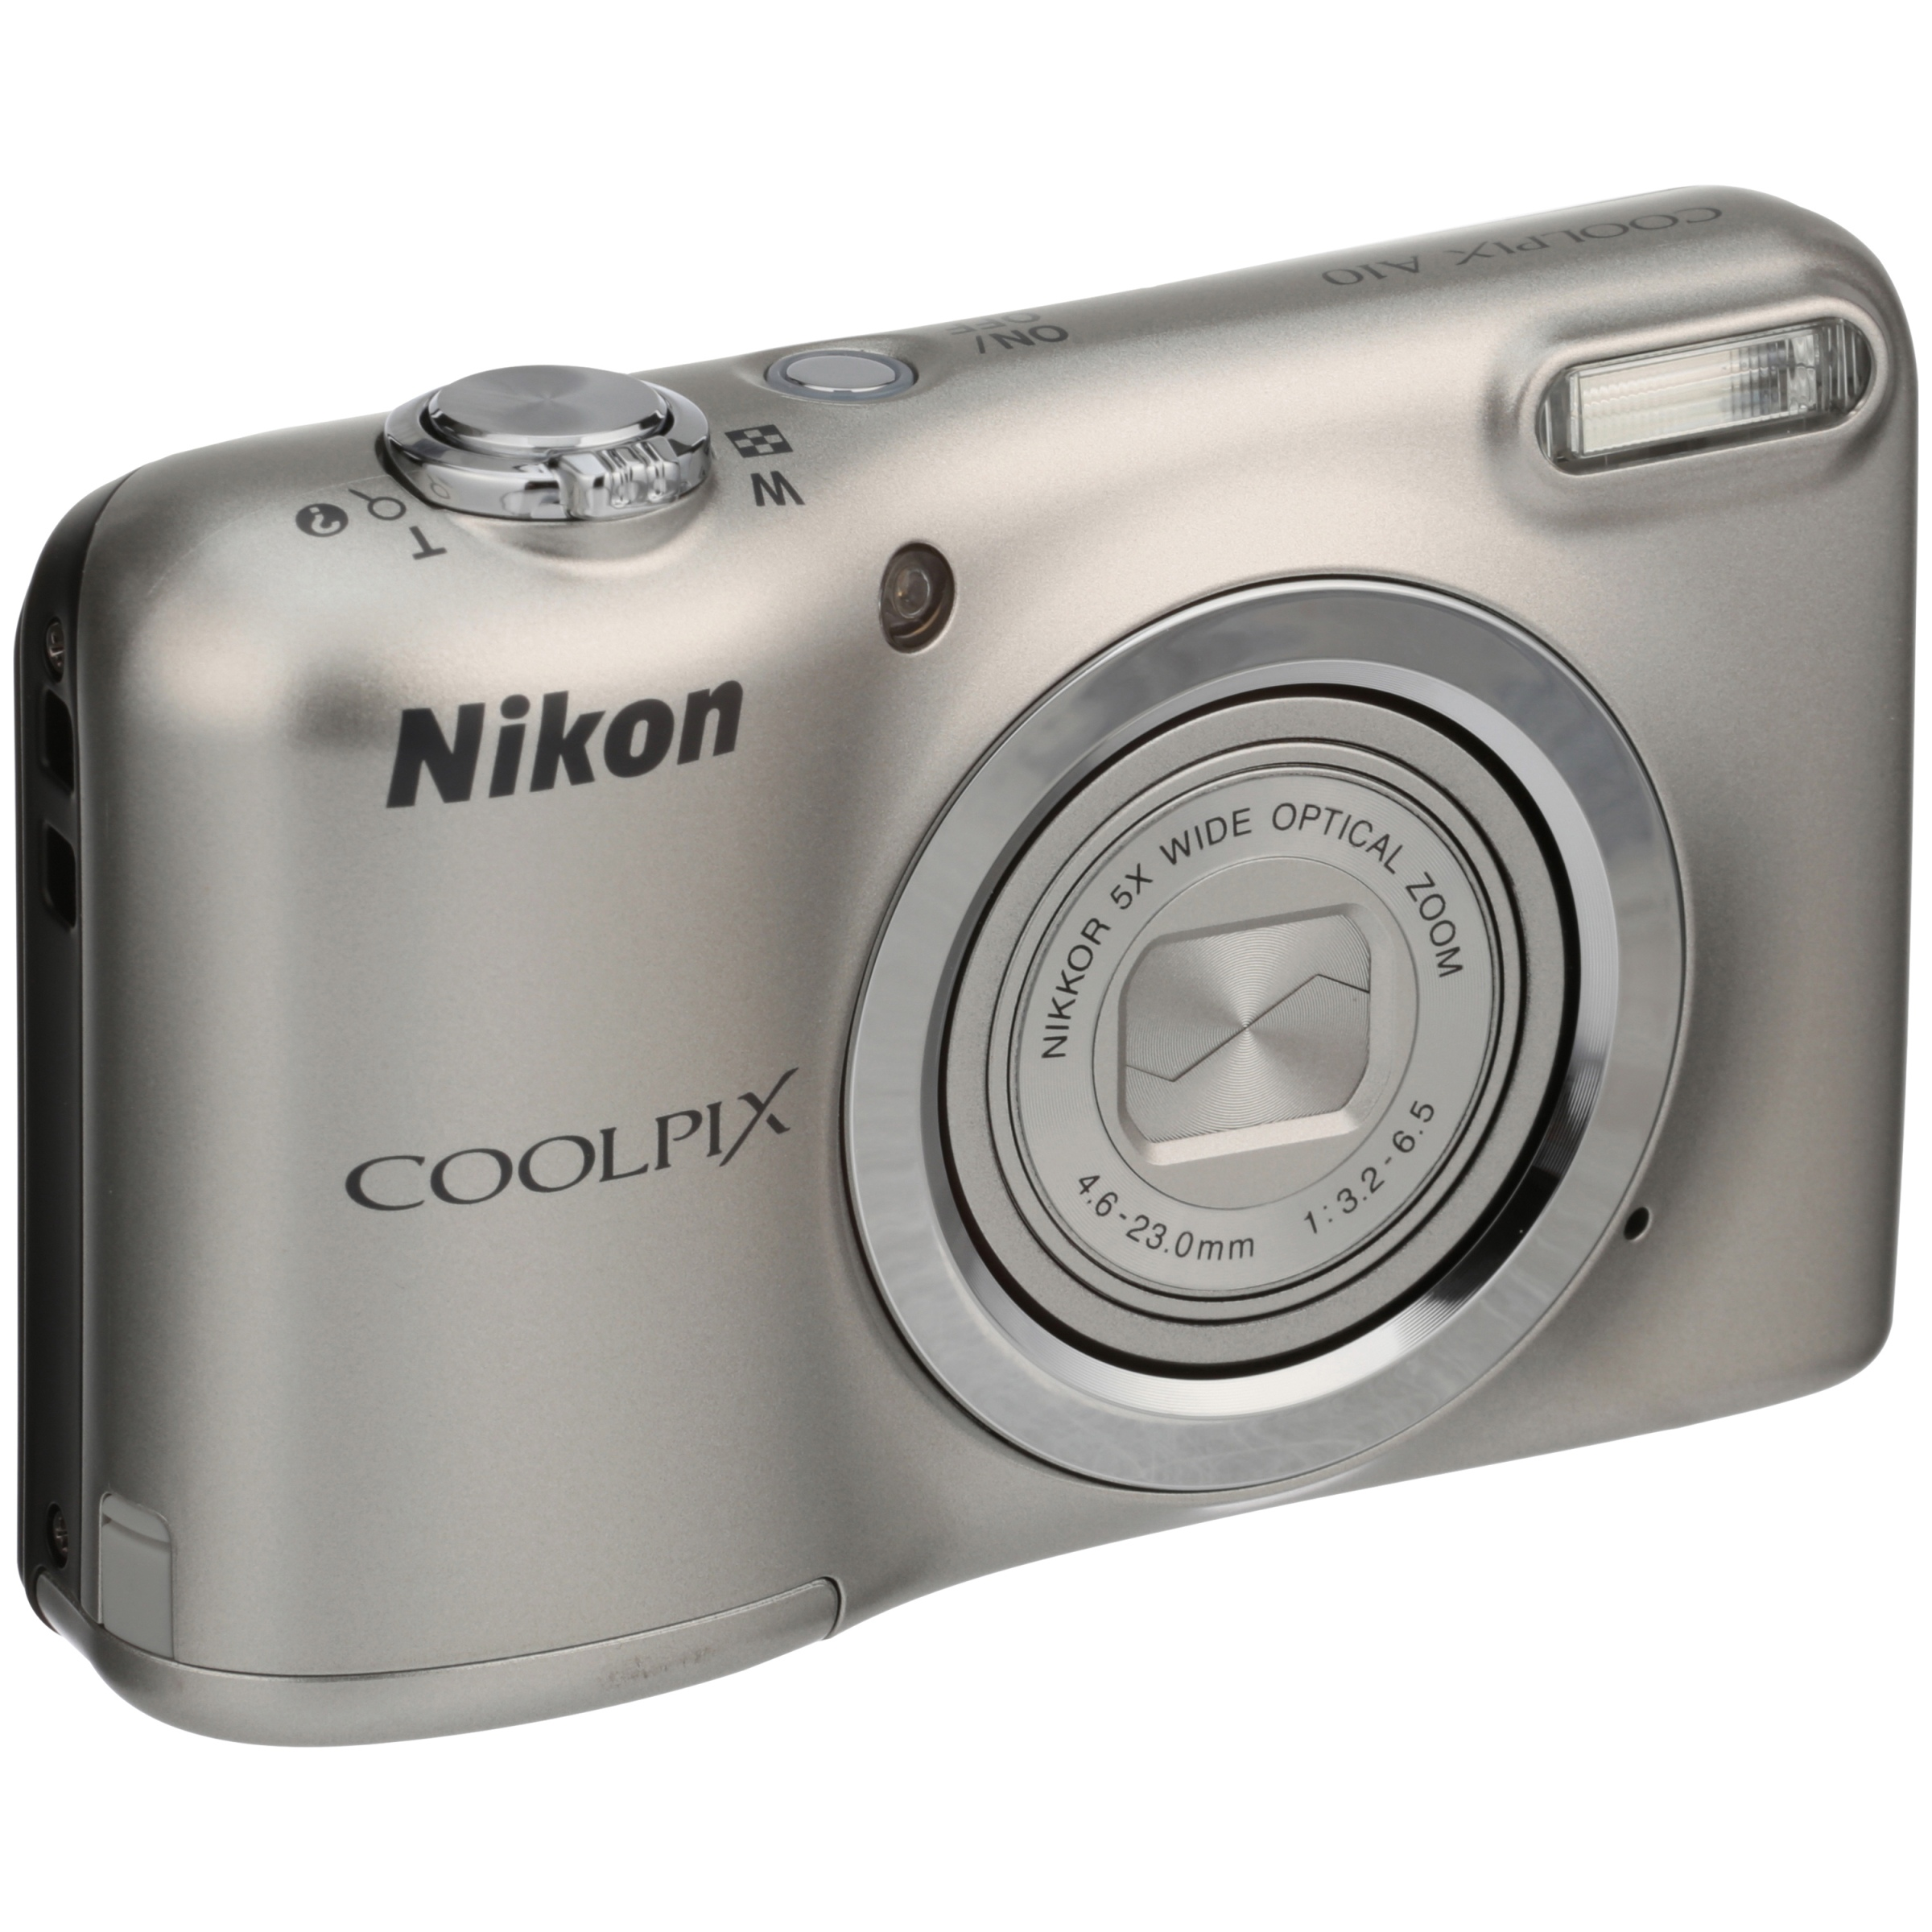 Nikon Coolpix A10 Digital Camera